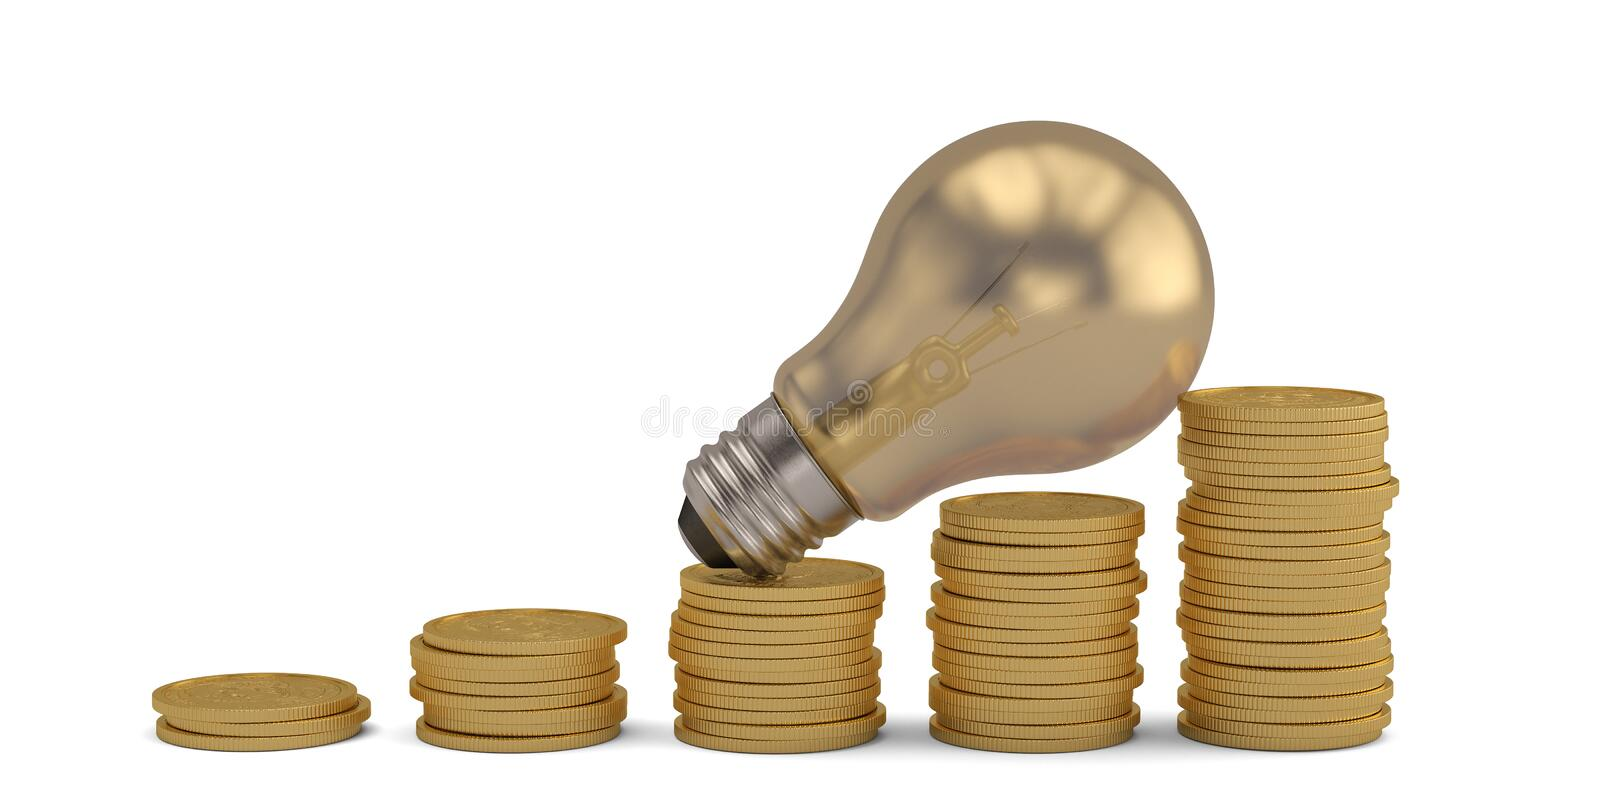 Gold coin stacks and light bulb isolated on white background. 3D illustration royalty free illustration